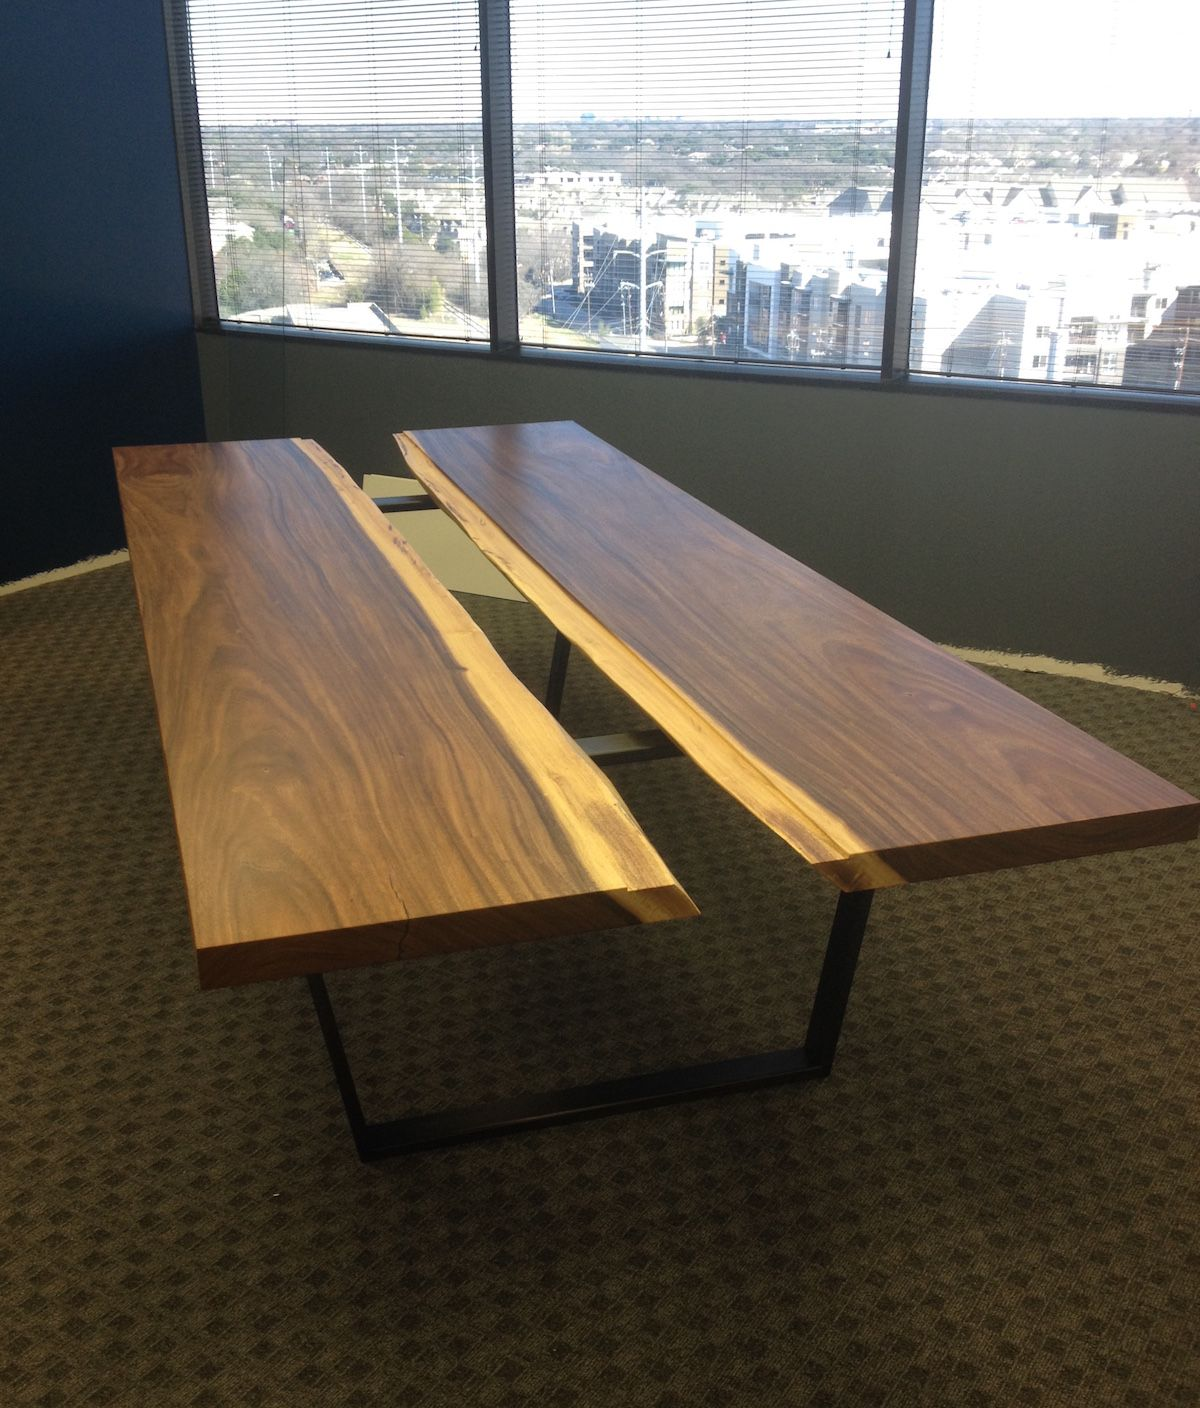 Designer Tables: Custom Modern Contemporary Industrial Conference Table By